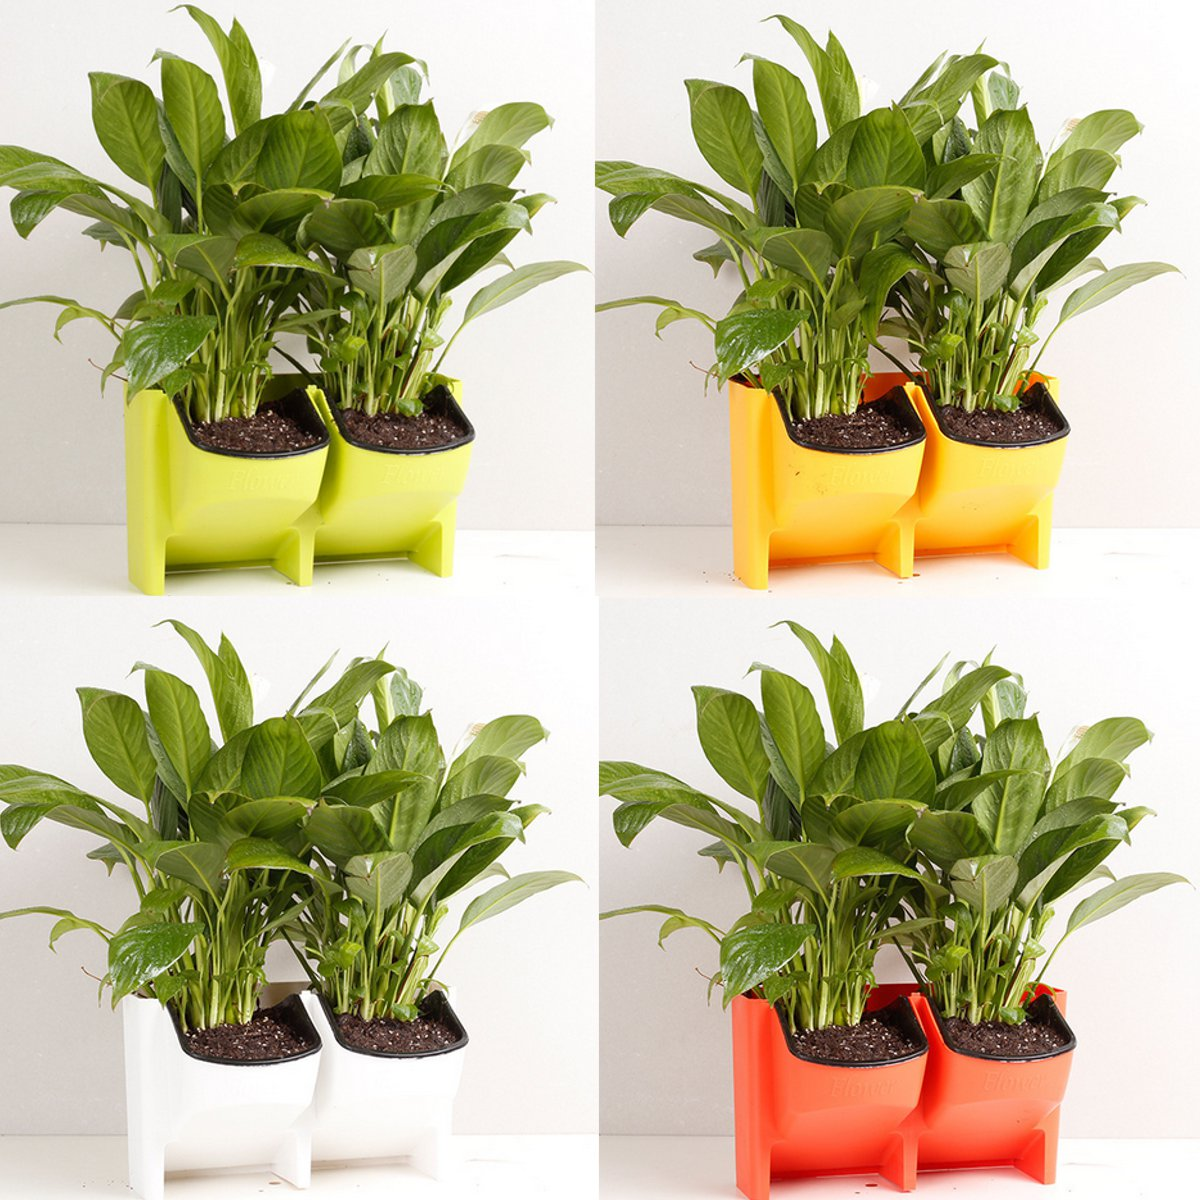 2 Pocket Vertical Wall Planter Self Watering Hanging